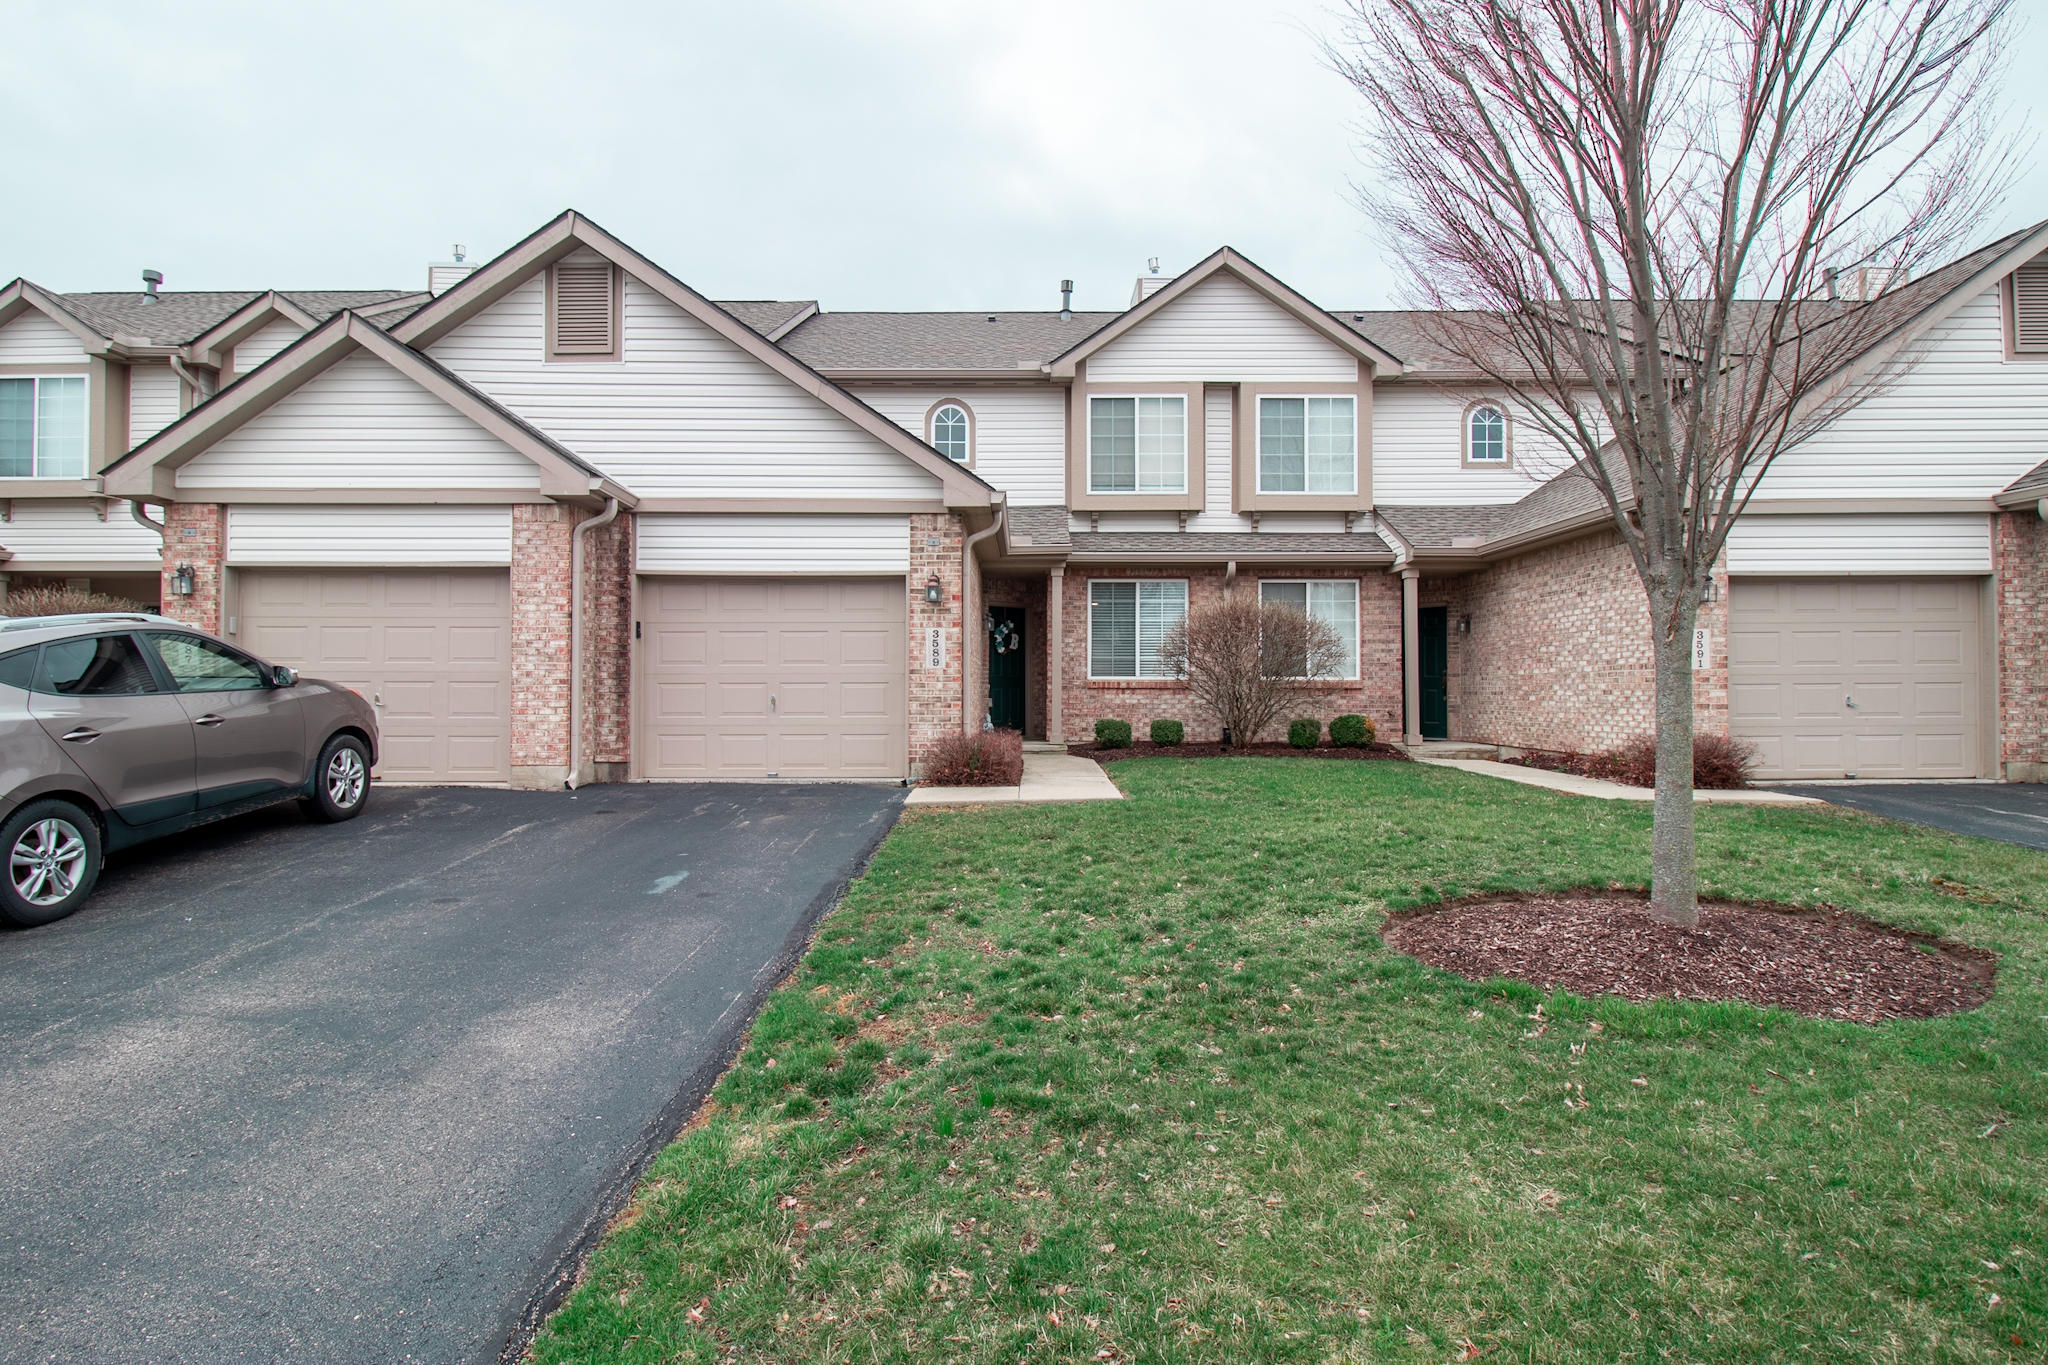 3589 Sequoia Drive Property Photo - Beavercreek, OH real estate listing